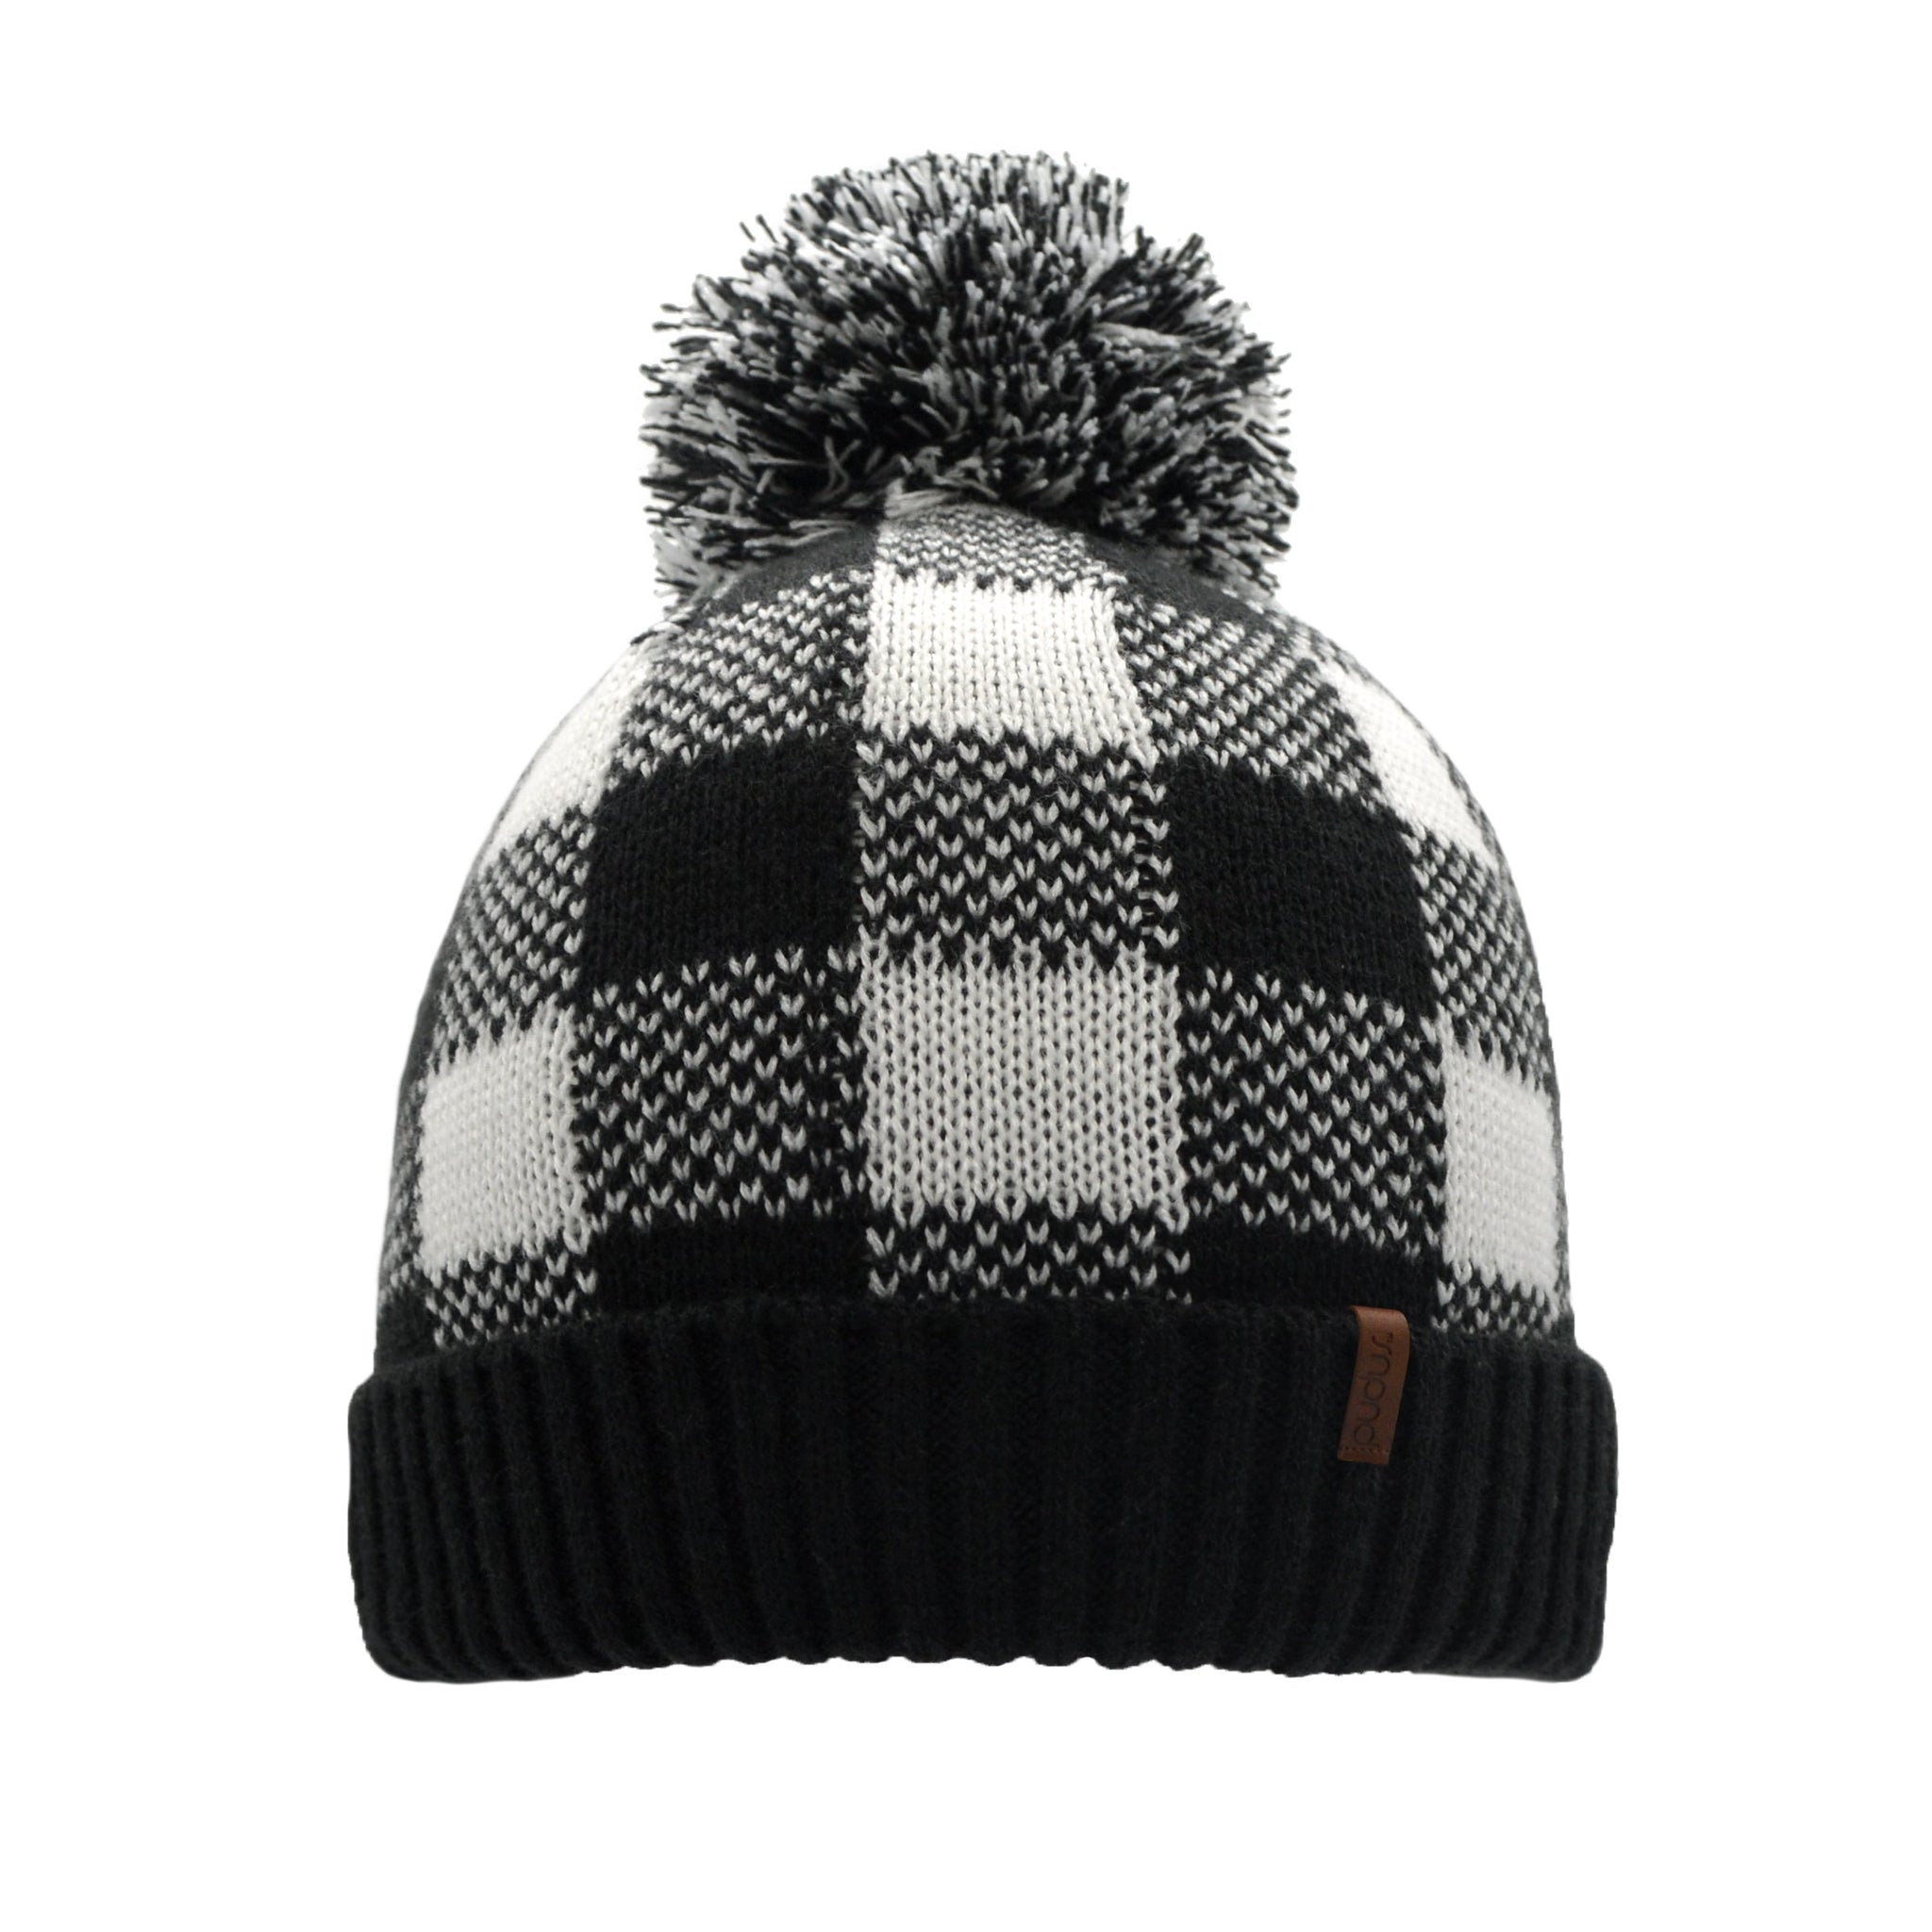 Beanie Winter Hat | Lumberjack White